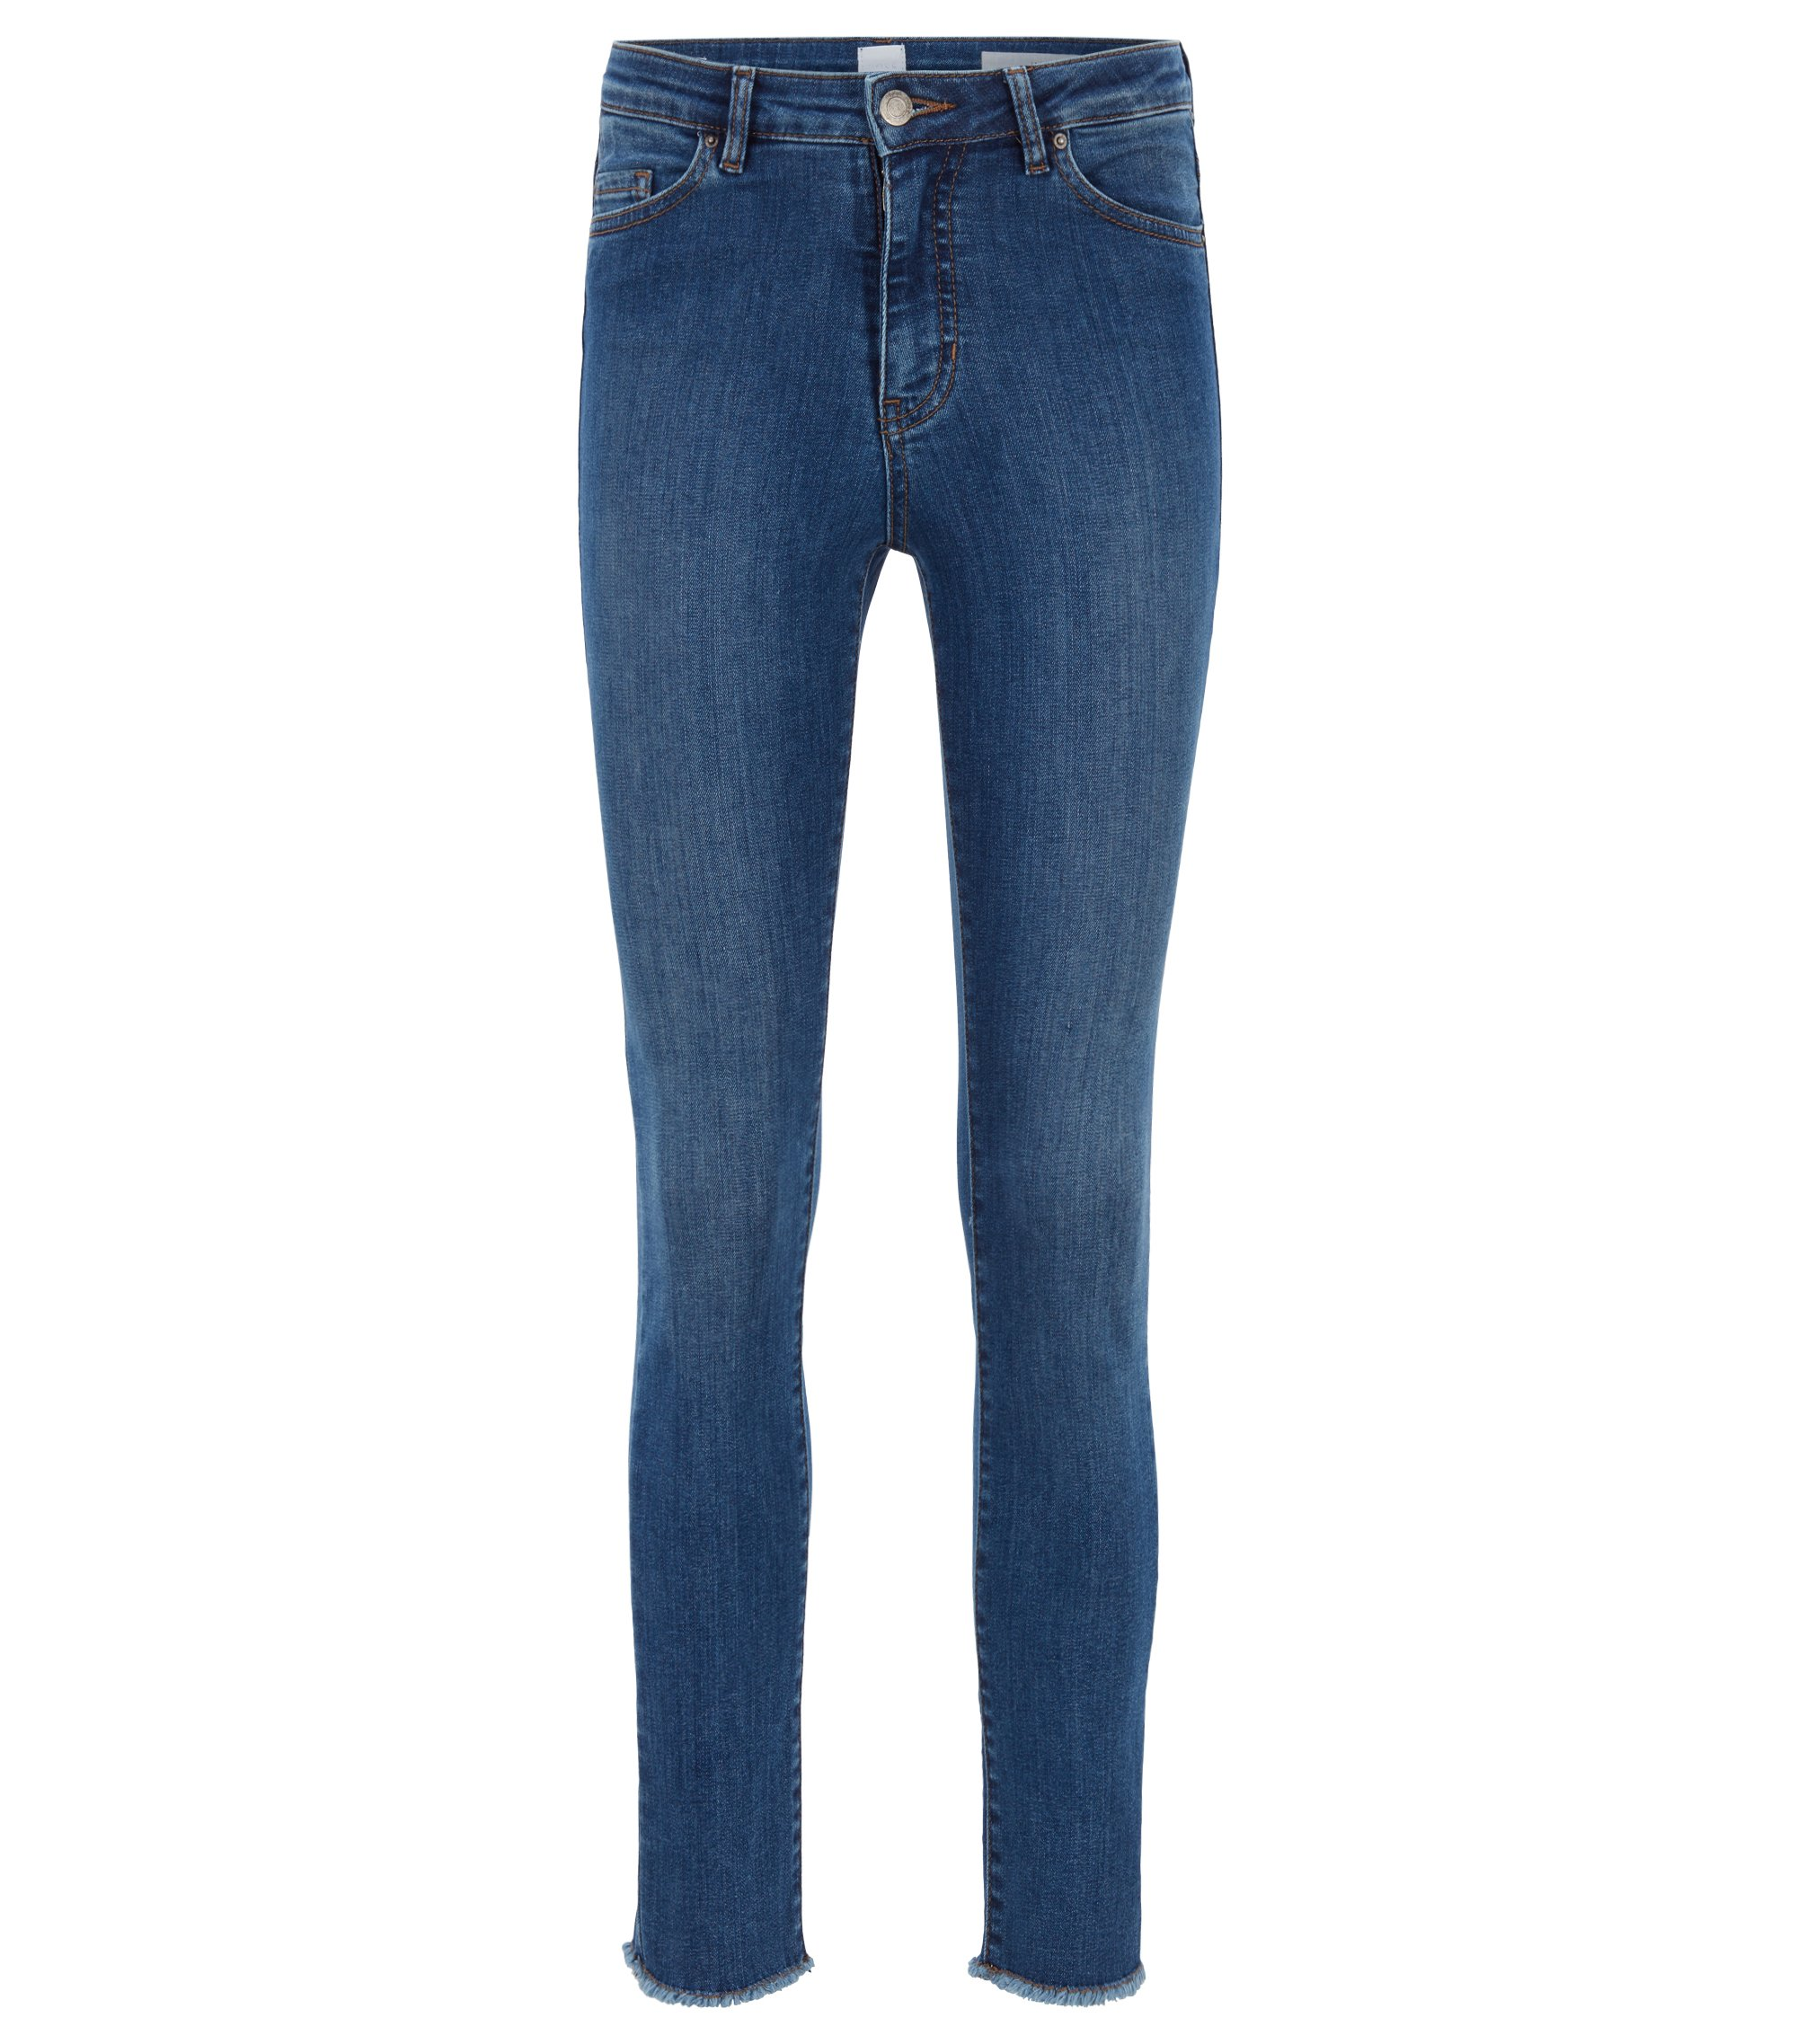 Skinny-Fit Jeans aus Powerstretch-Denim in Cropped-Länge, Blau